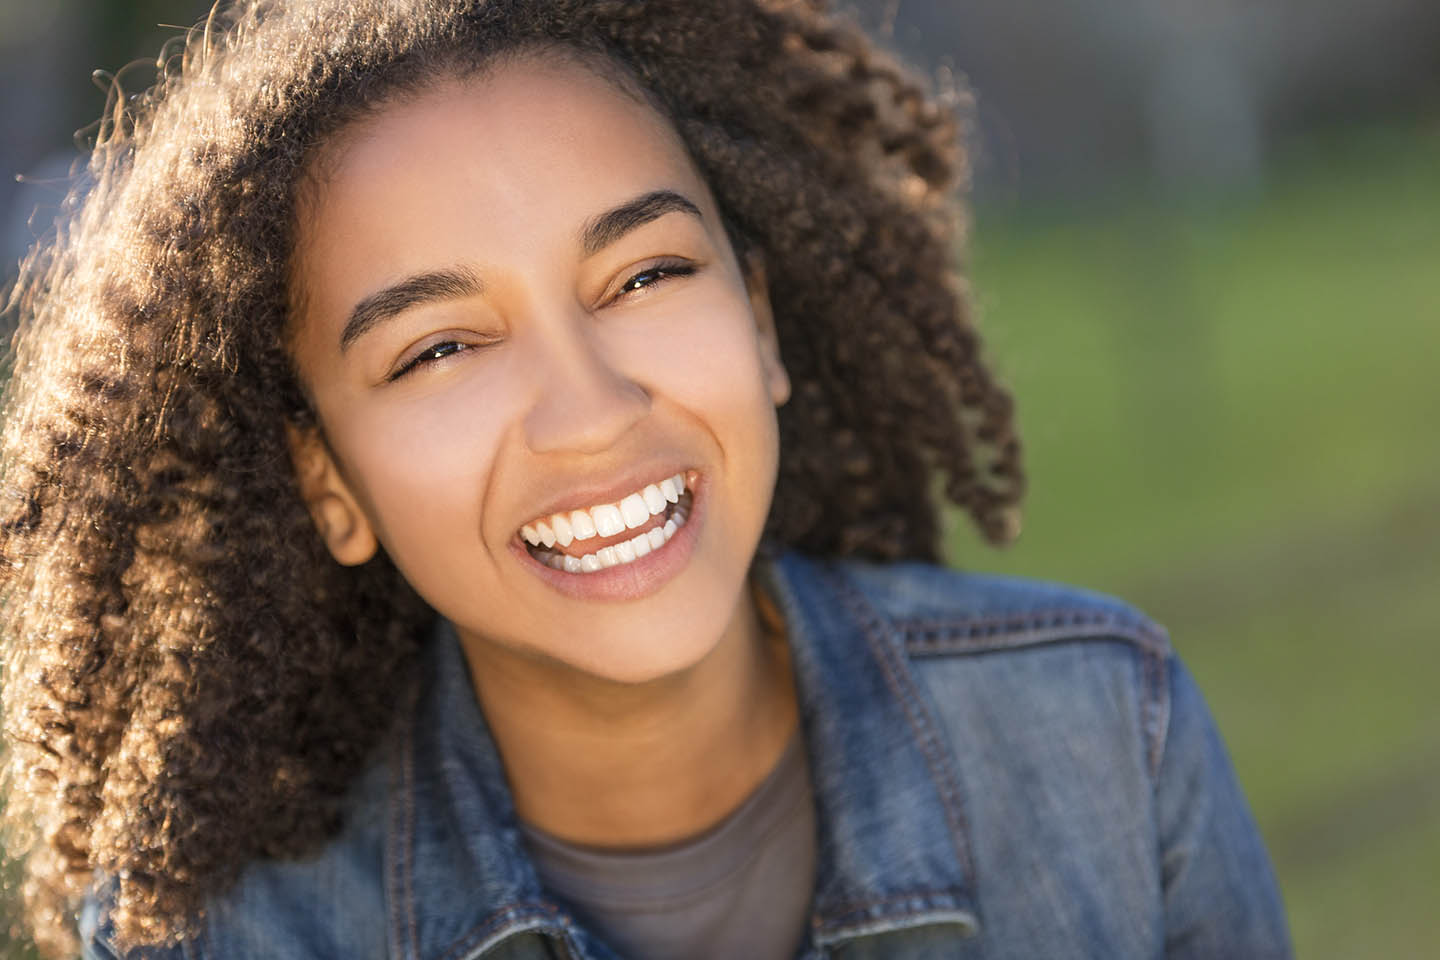 Girl with curly hair smiling in a field